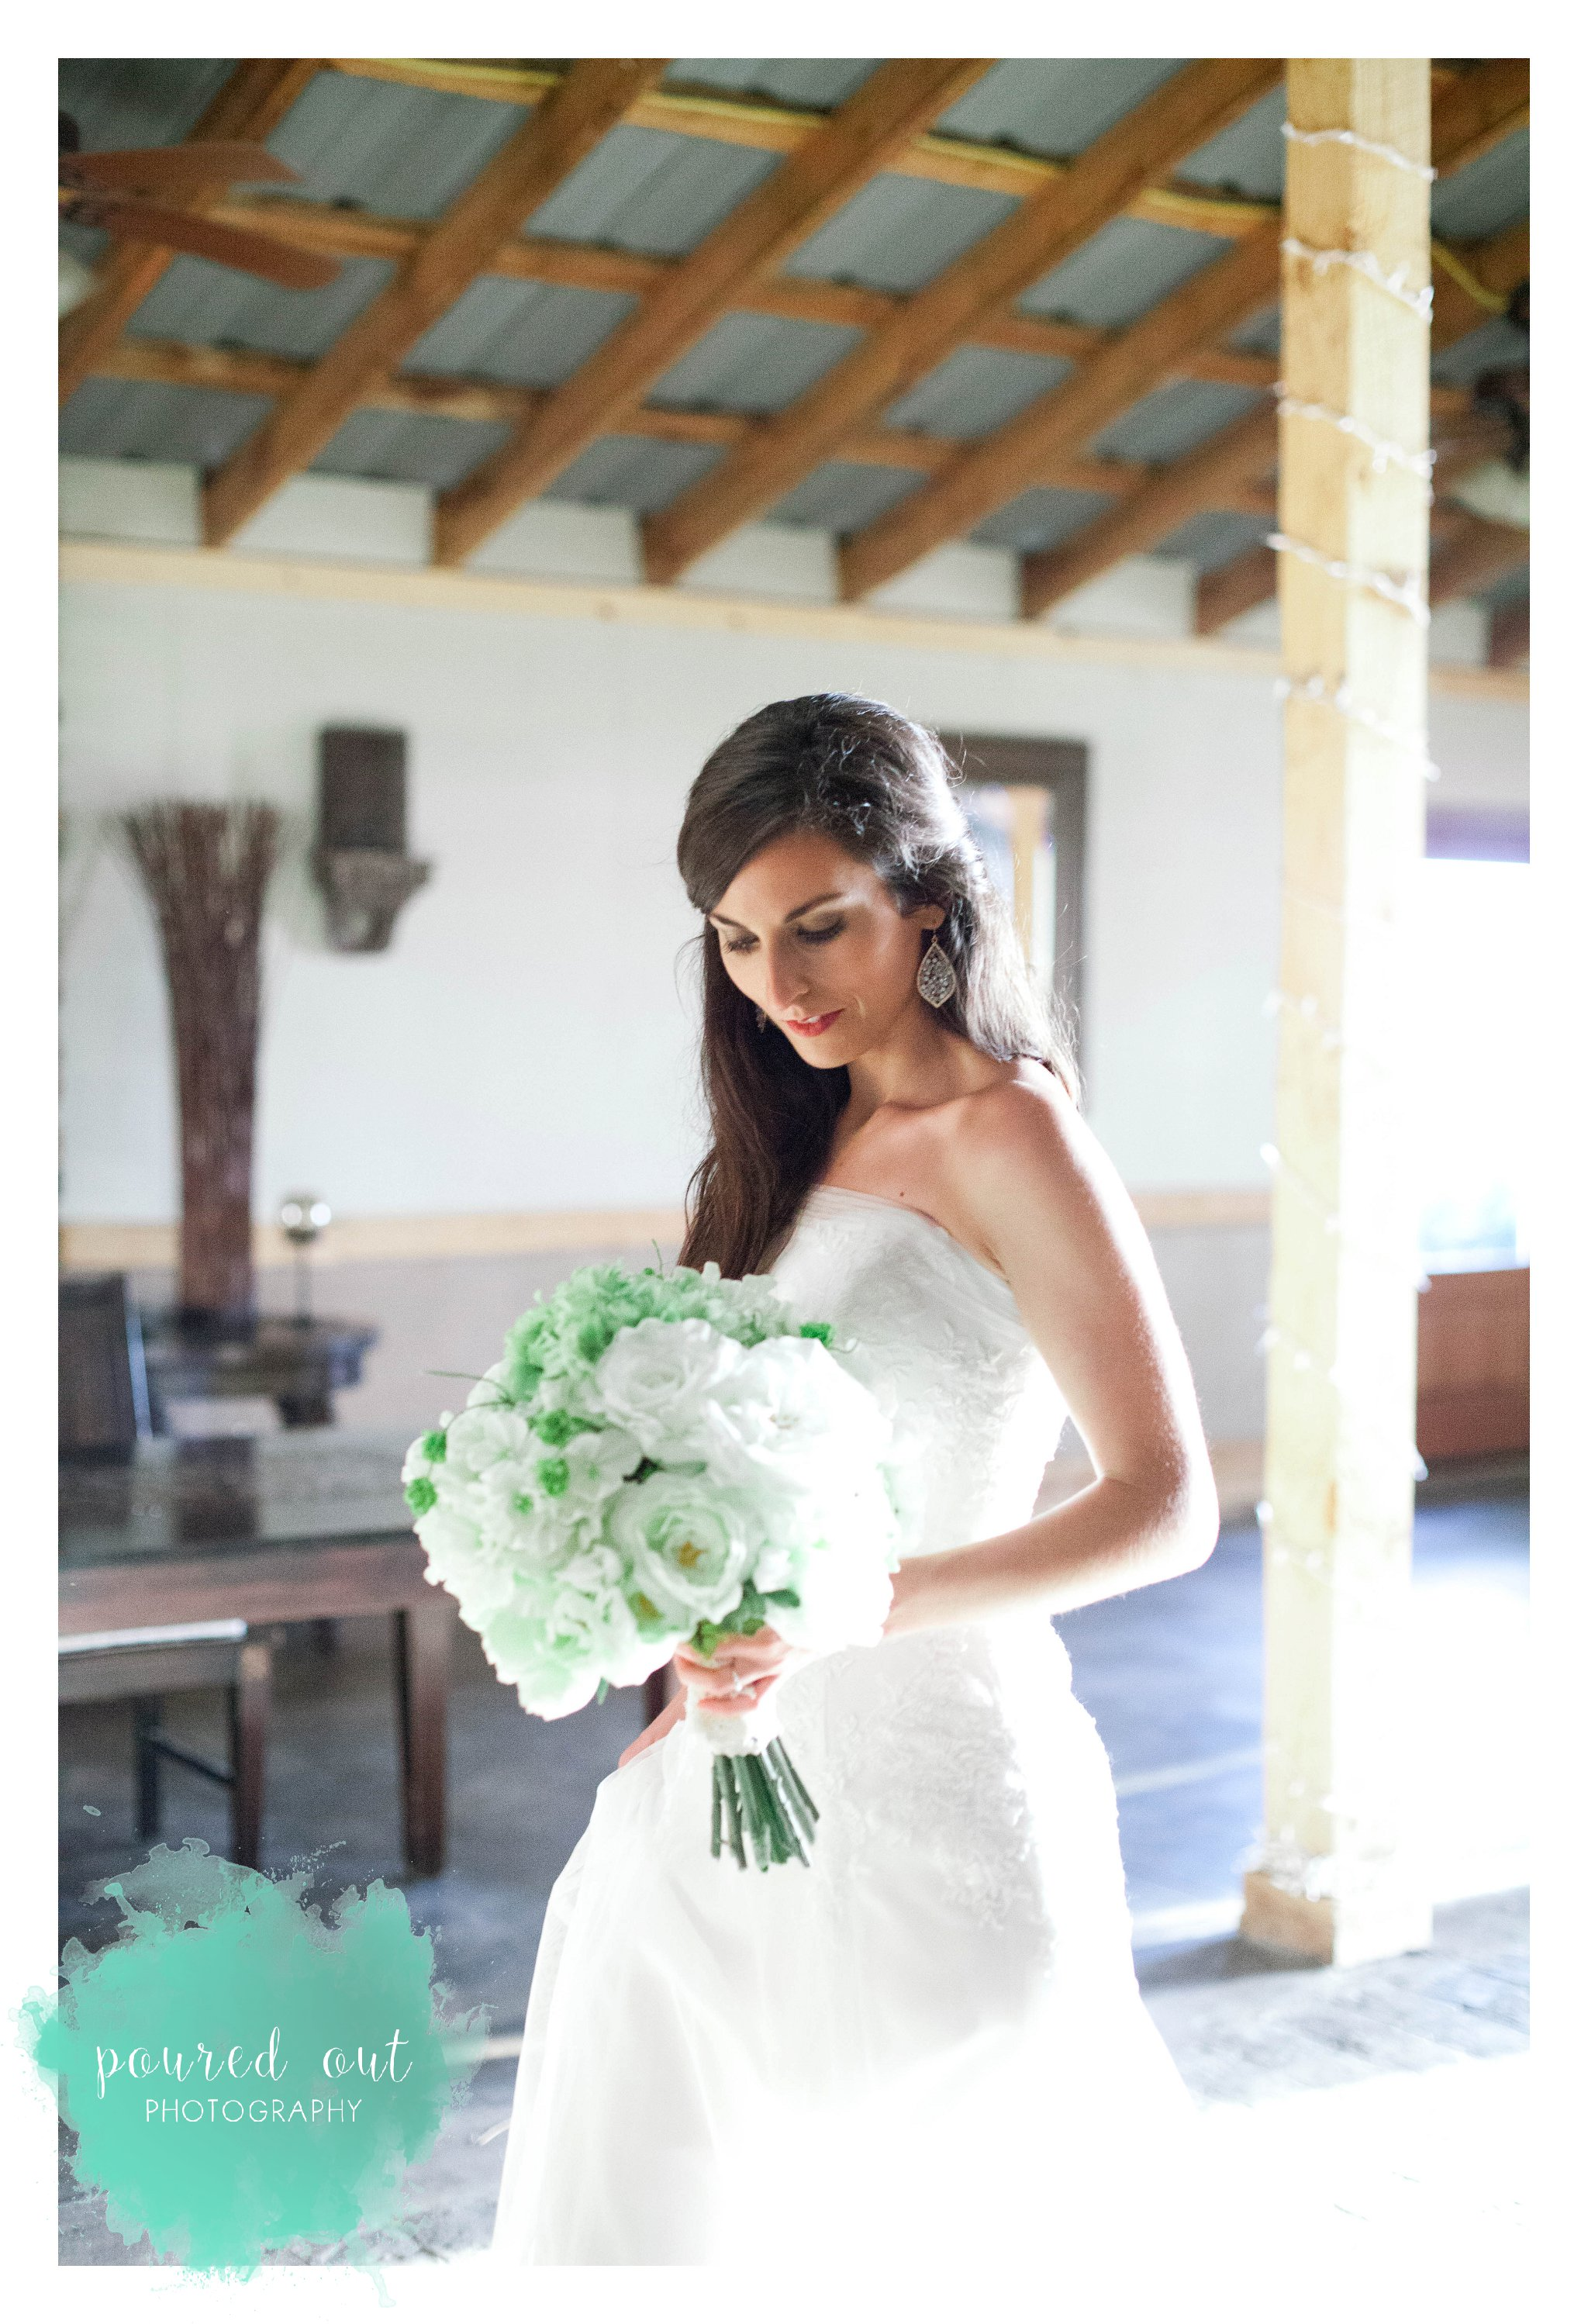 dani_bridal_poured_out_photography-175_WEB.jpg